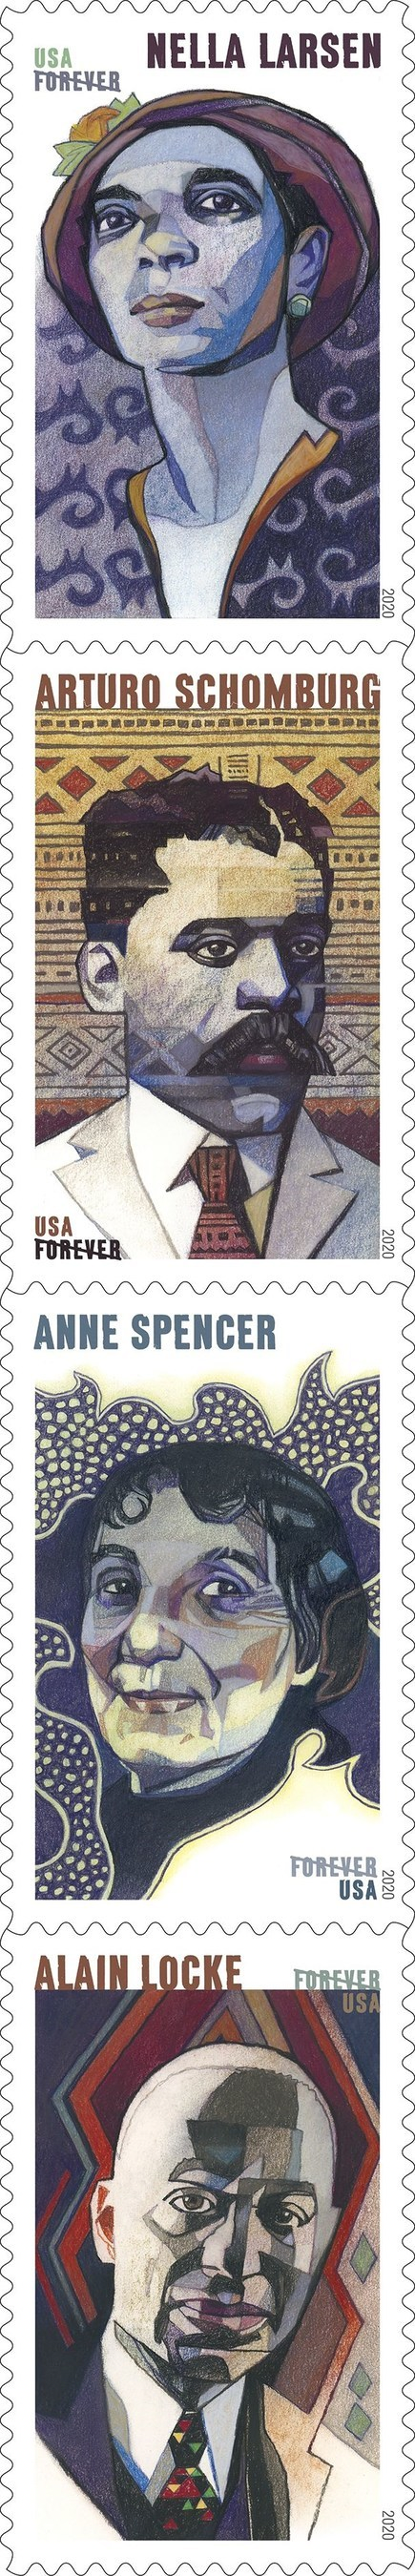 The new Voices of the Harlem Renaissance stamps honor four transformative writers of the 1920s. (PRNewsfoto/U.S. Postal Service)